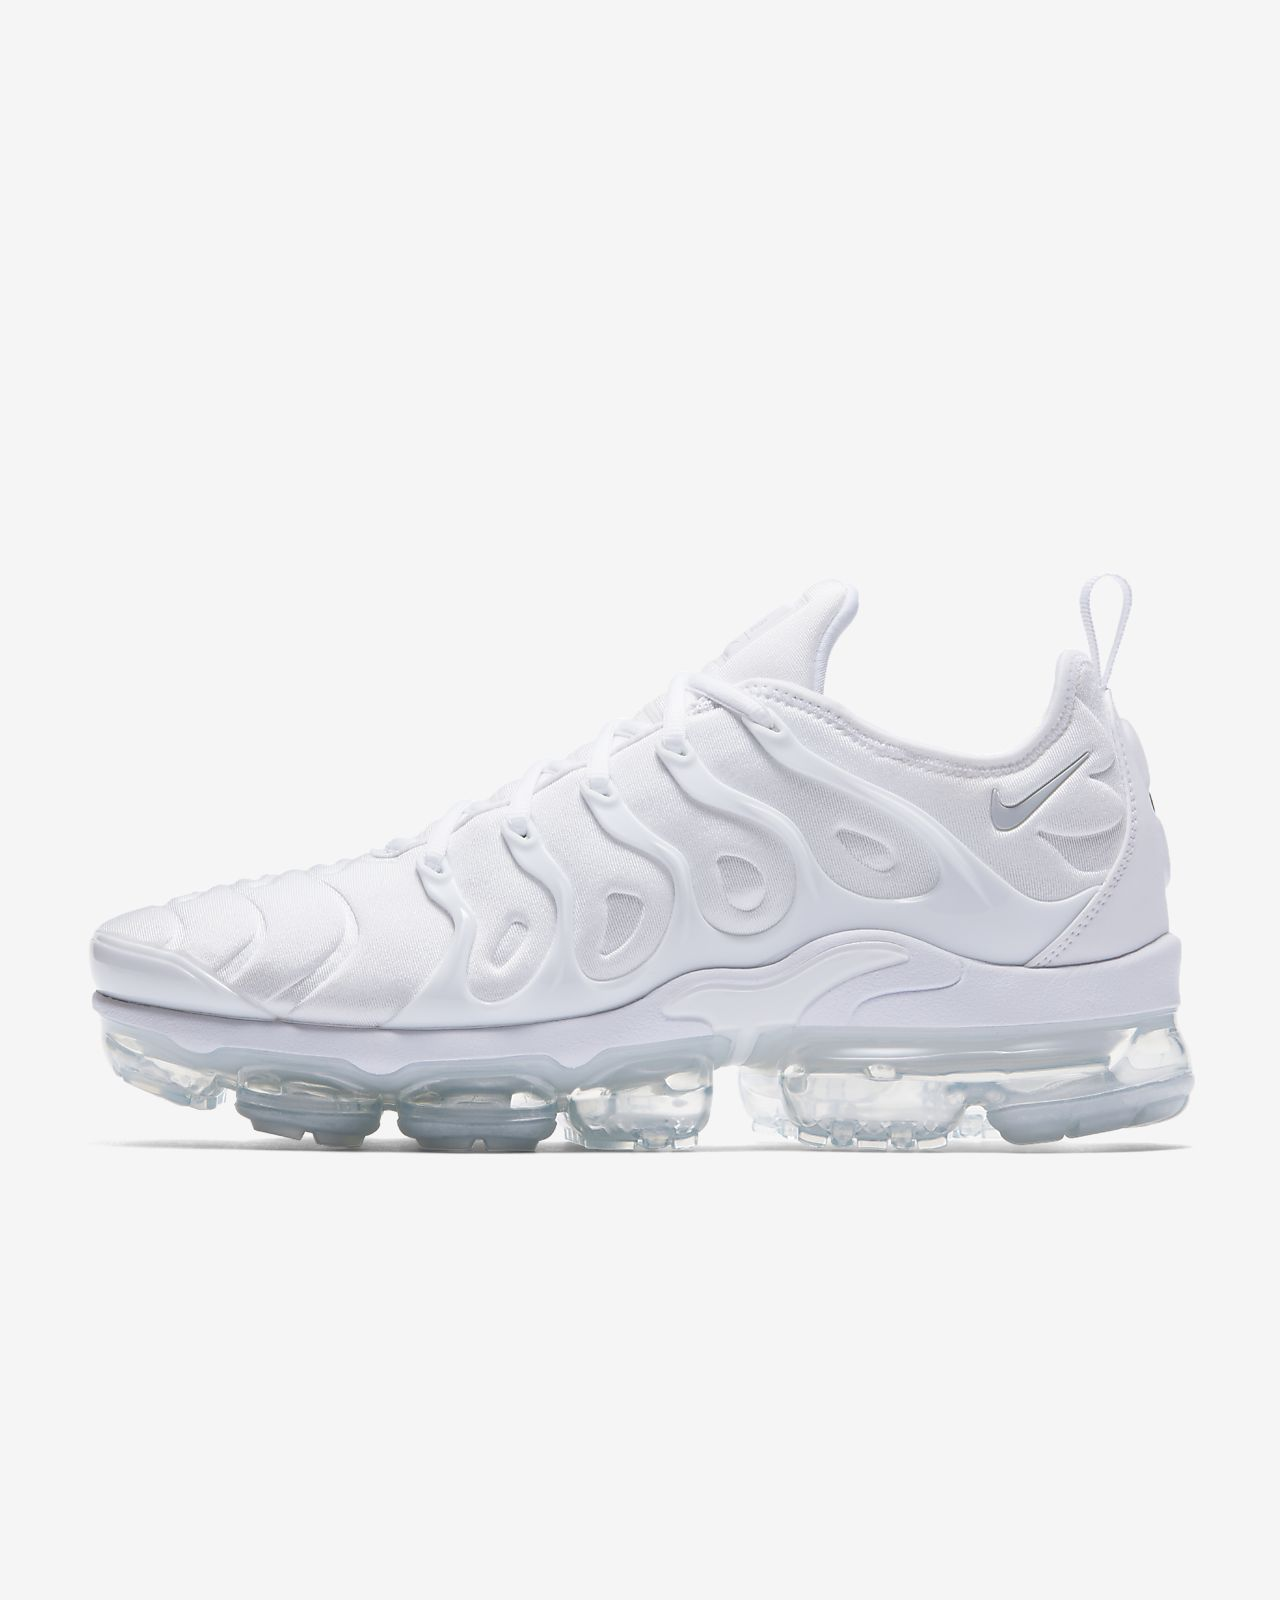 6c284b5bde3 Nike Air VaporMax Plus Men s Shoe. Nike.com DK